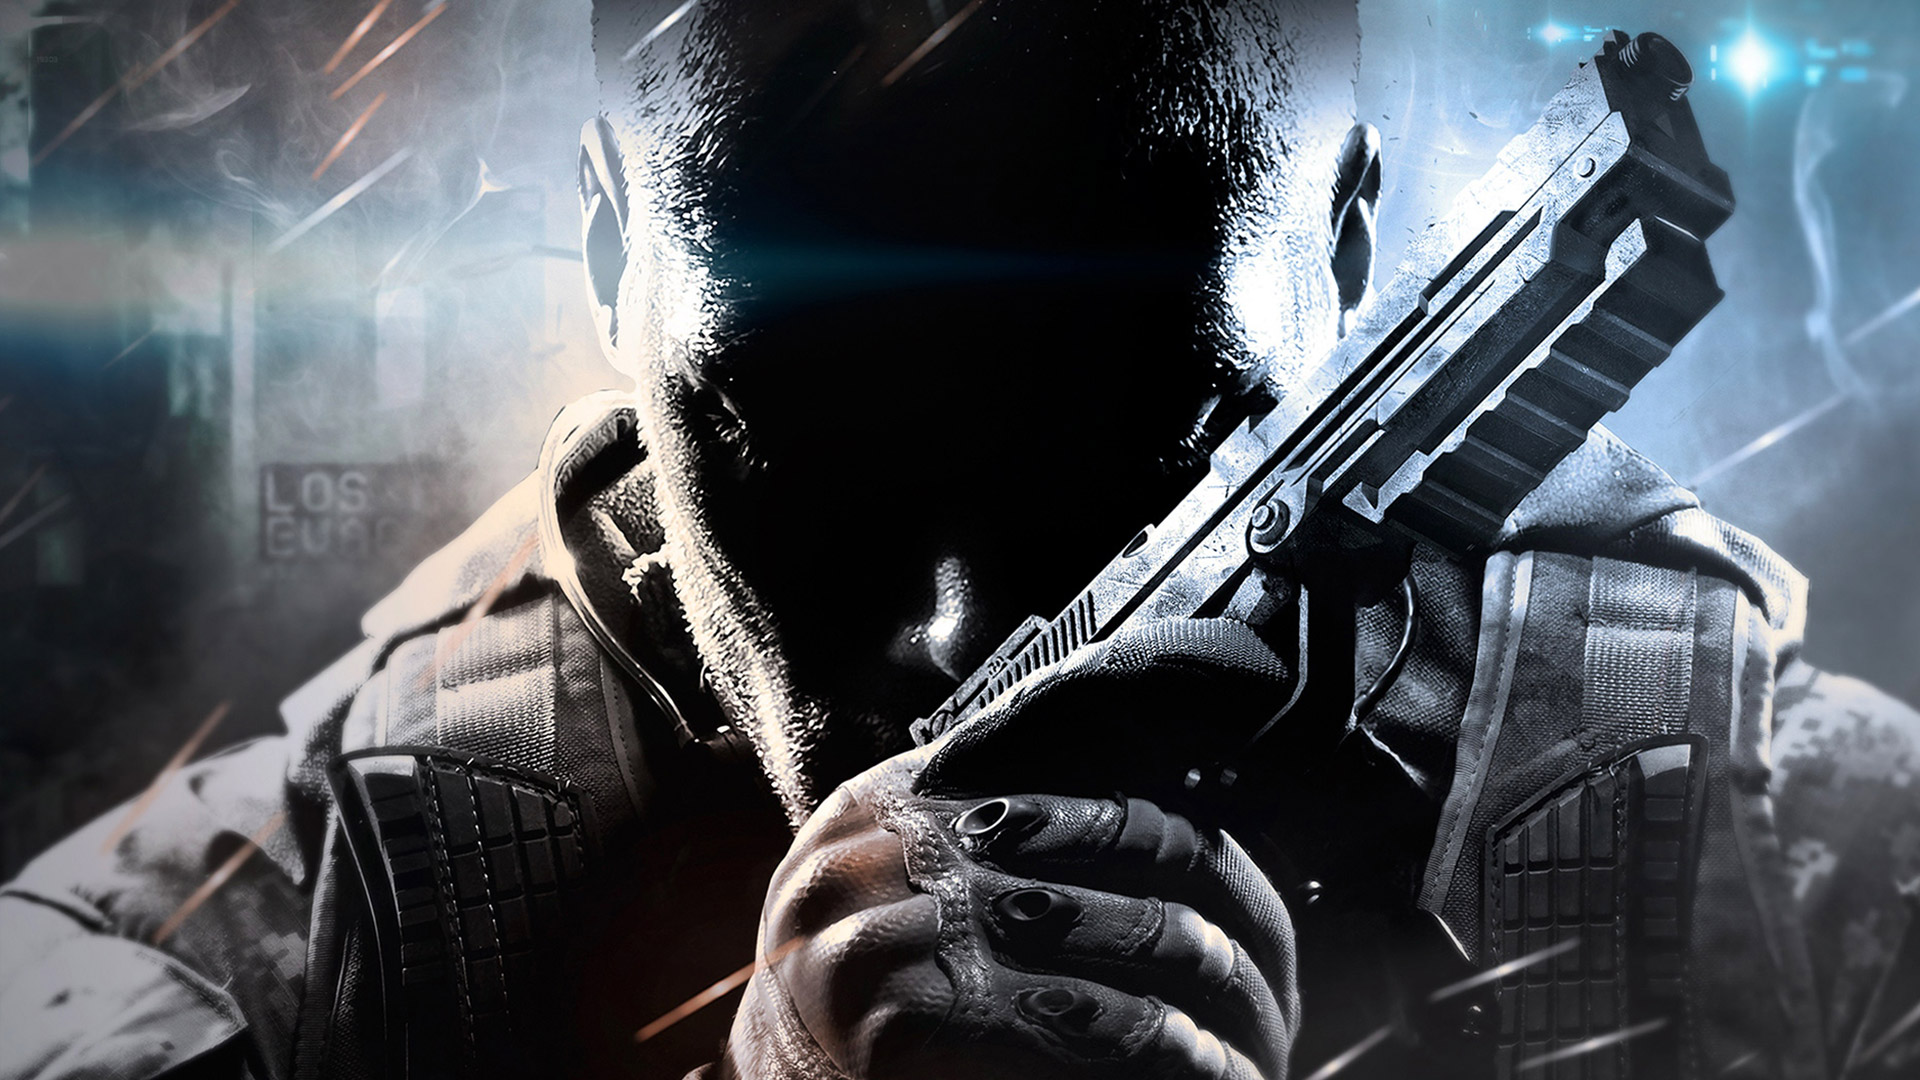 Call Of Duty Black Ops 2 Wallpaper 18 Wallpapersbq